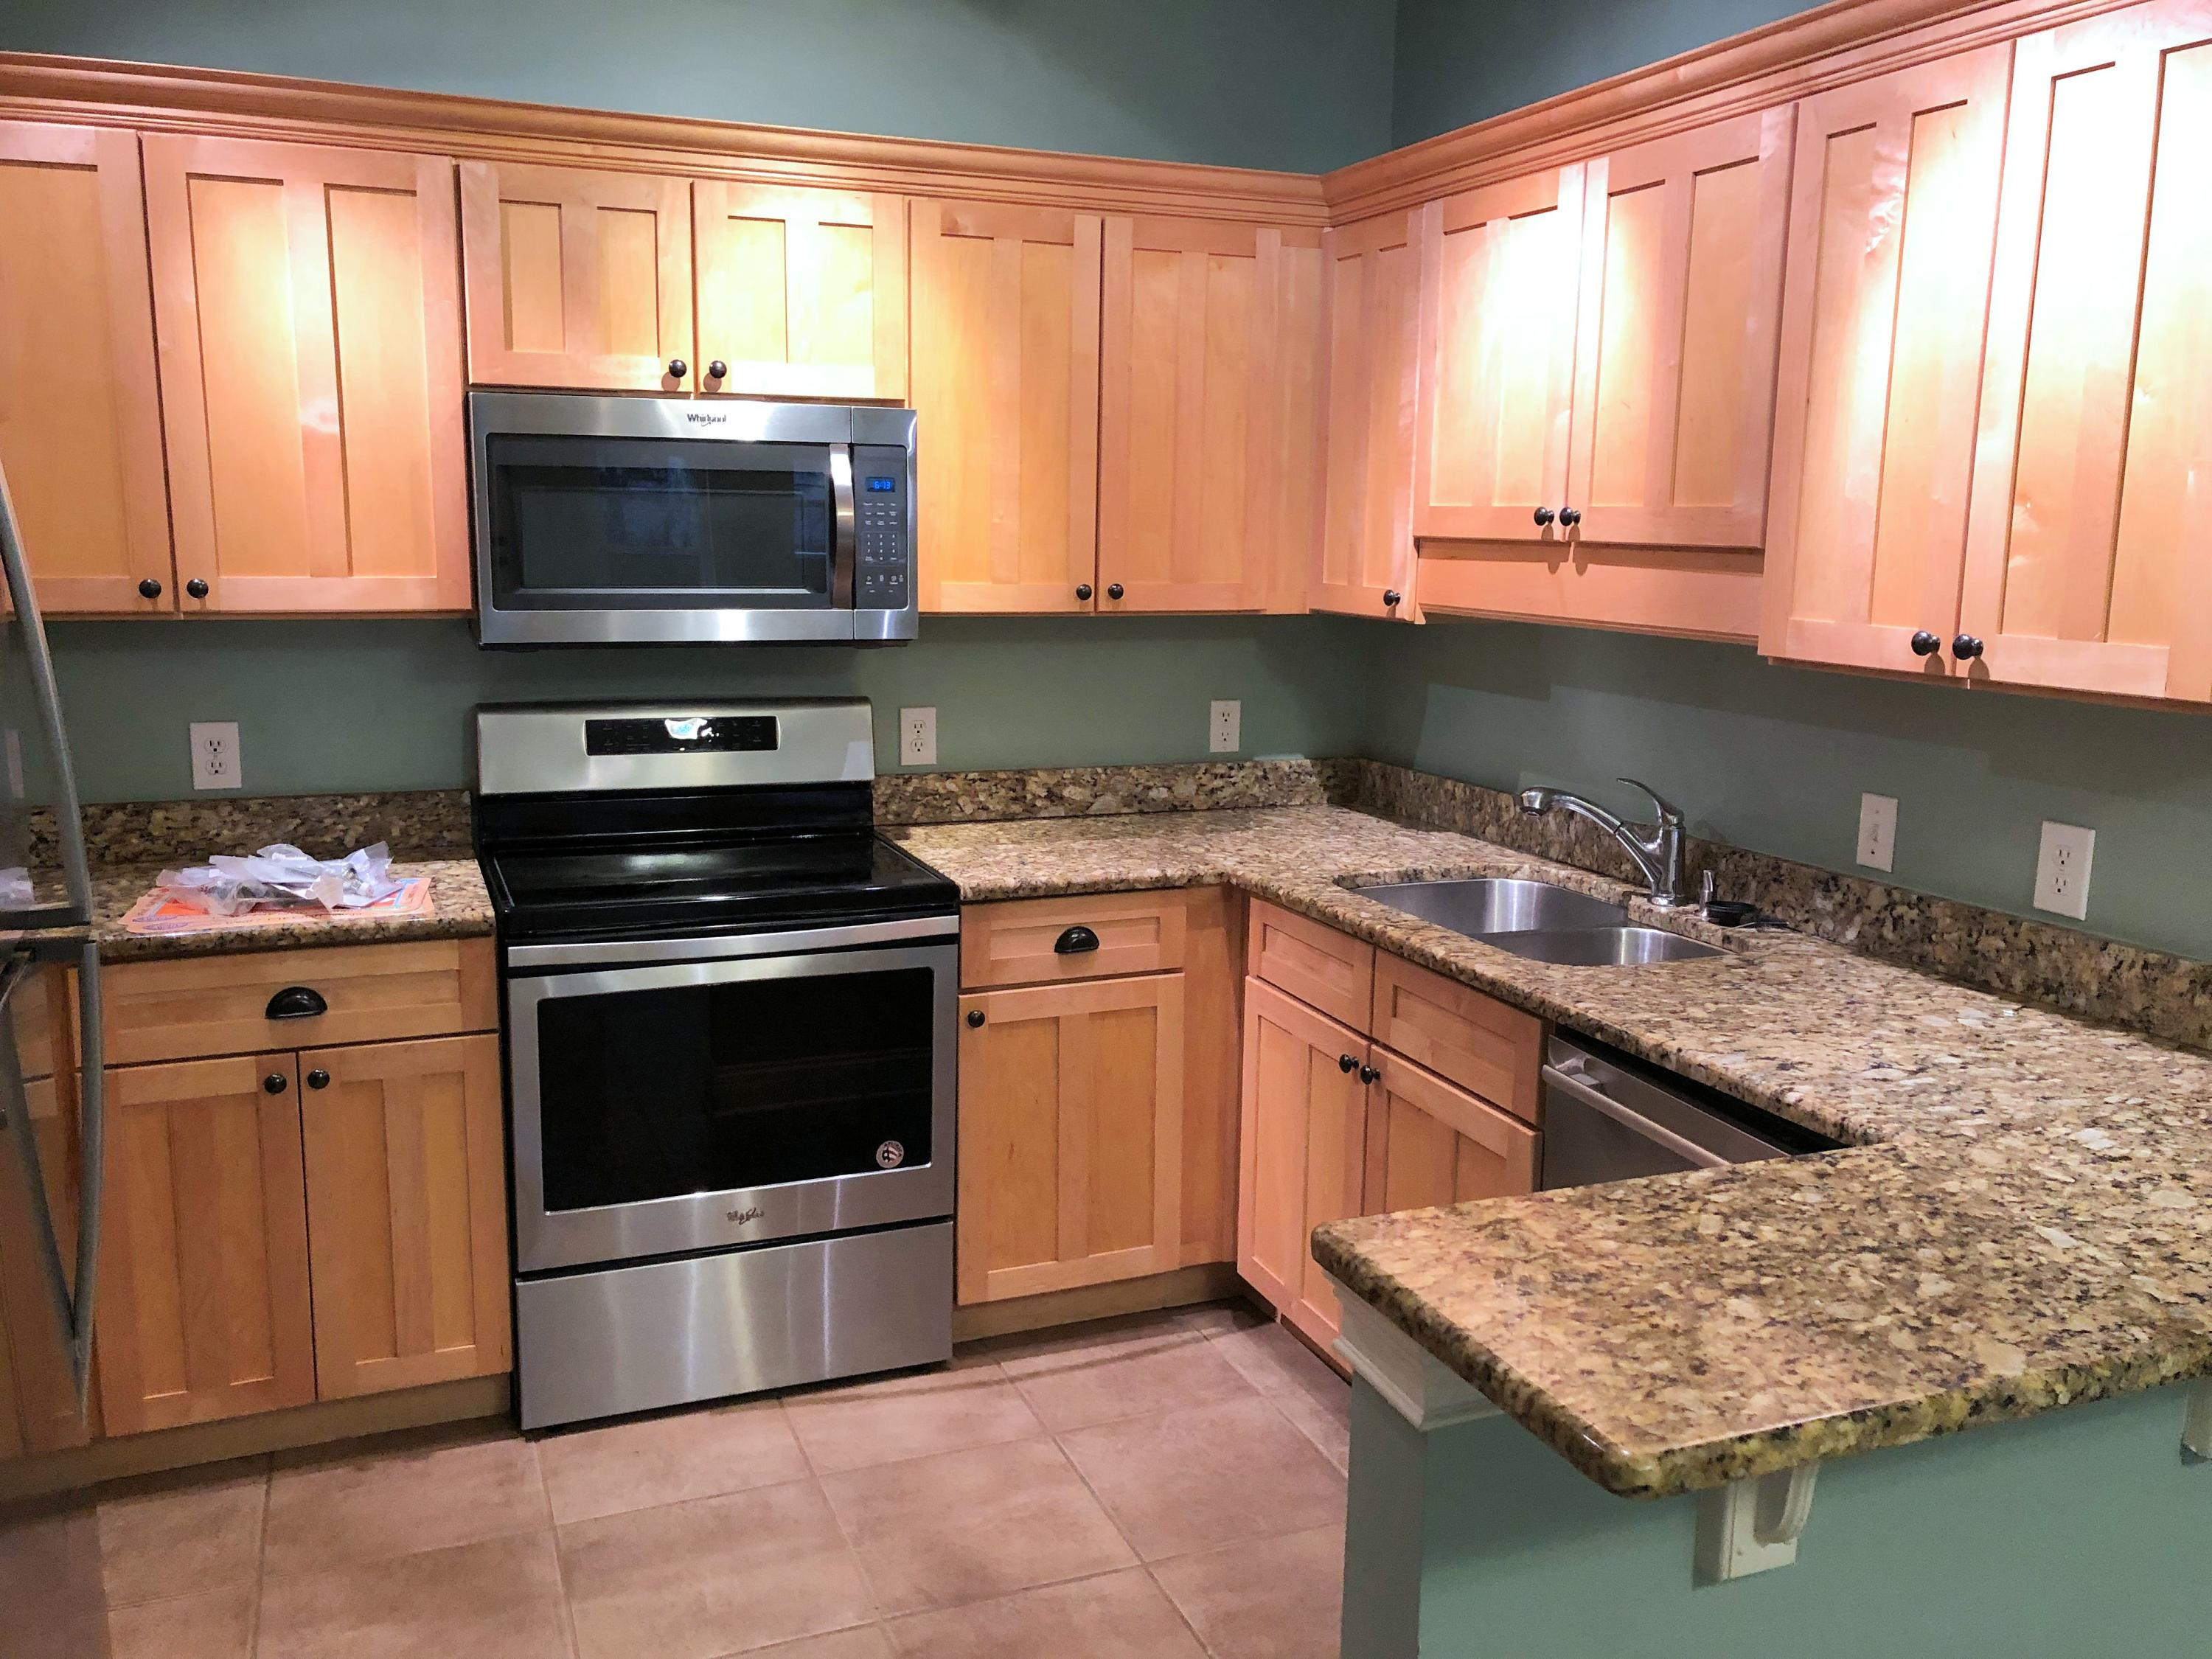 2 Br 2 Ba Condo on the first floor.  New laminate floor just installed.  No carpet.  Unfurnished.  Upgraded new stainless steal appliances in the kitchen, new toilets, and upgraded washer and dryer (2 years old). Beach Access is less than a mile from development.